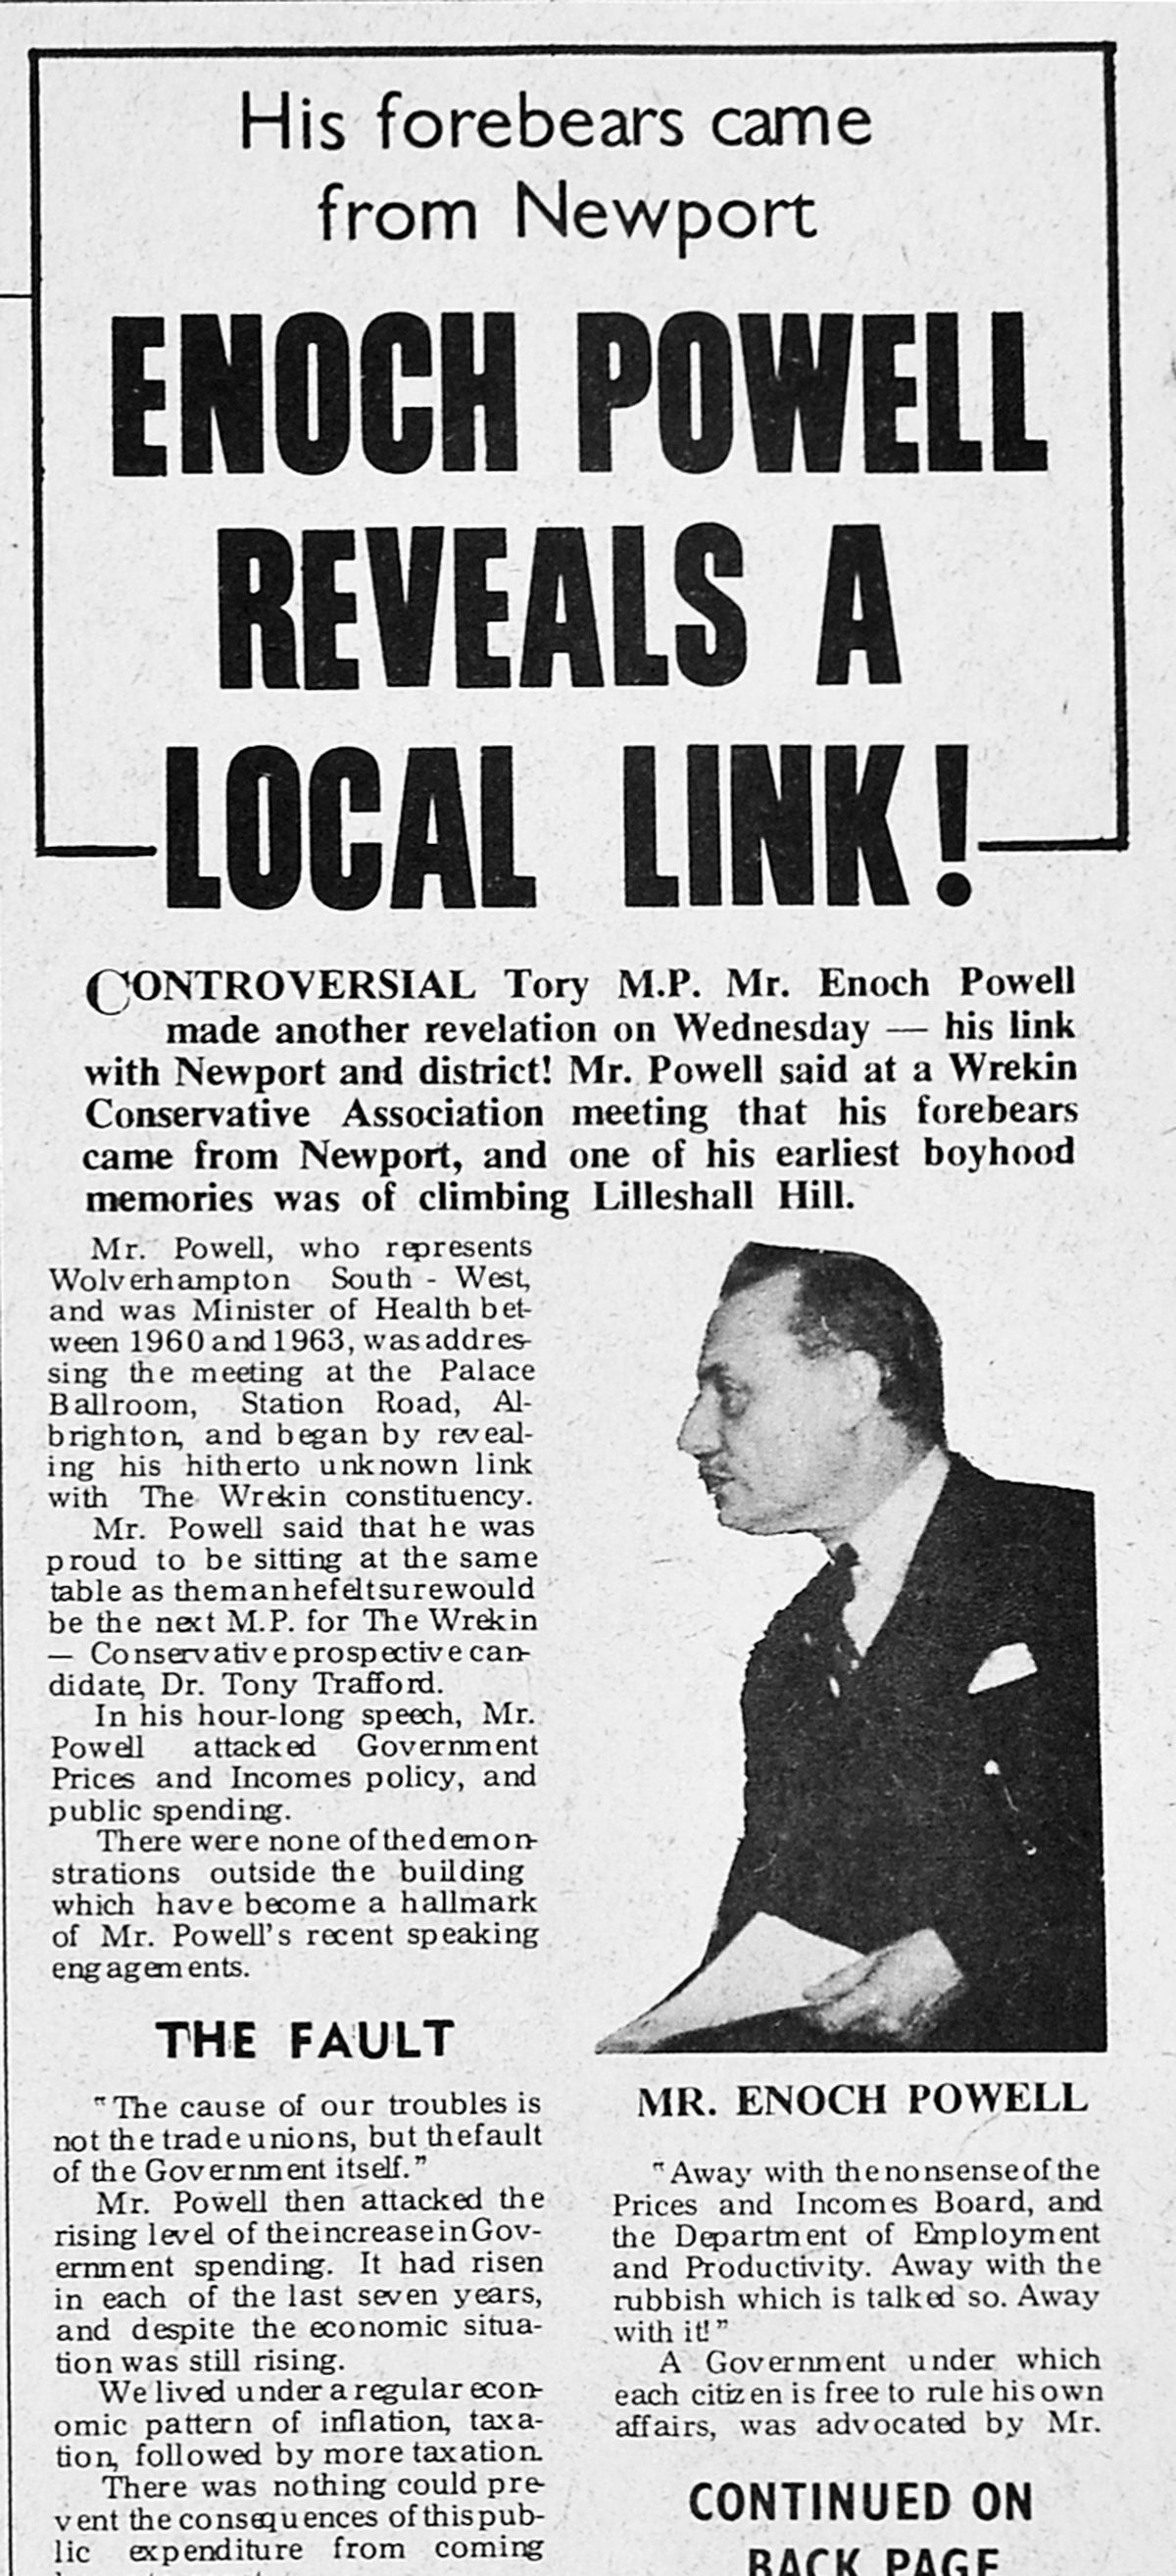 A report in the Newport and Market Drayton Advertiser of Friday, January 10, 1969, revealing the controversial politician's local links.